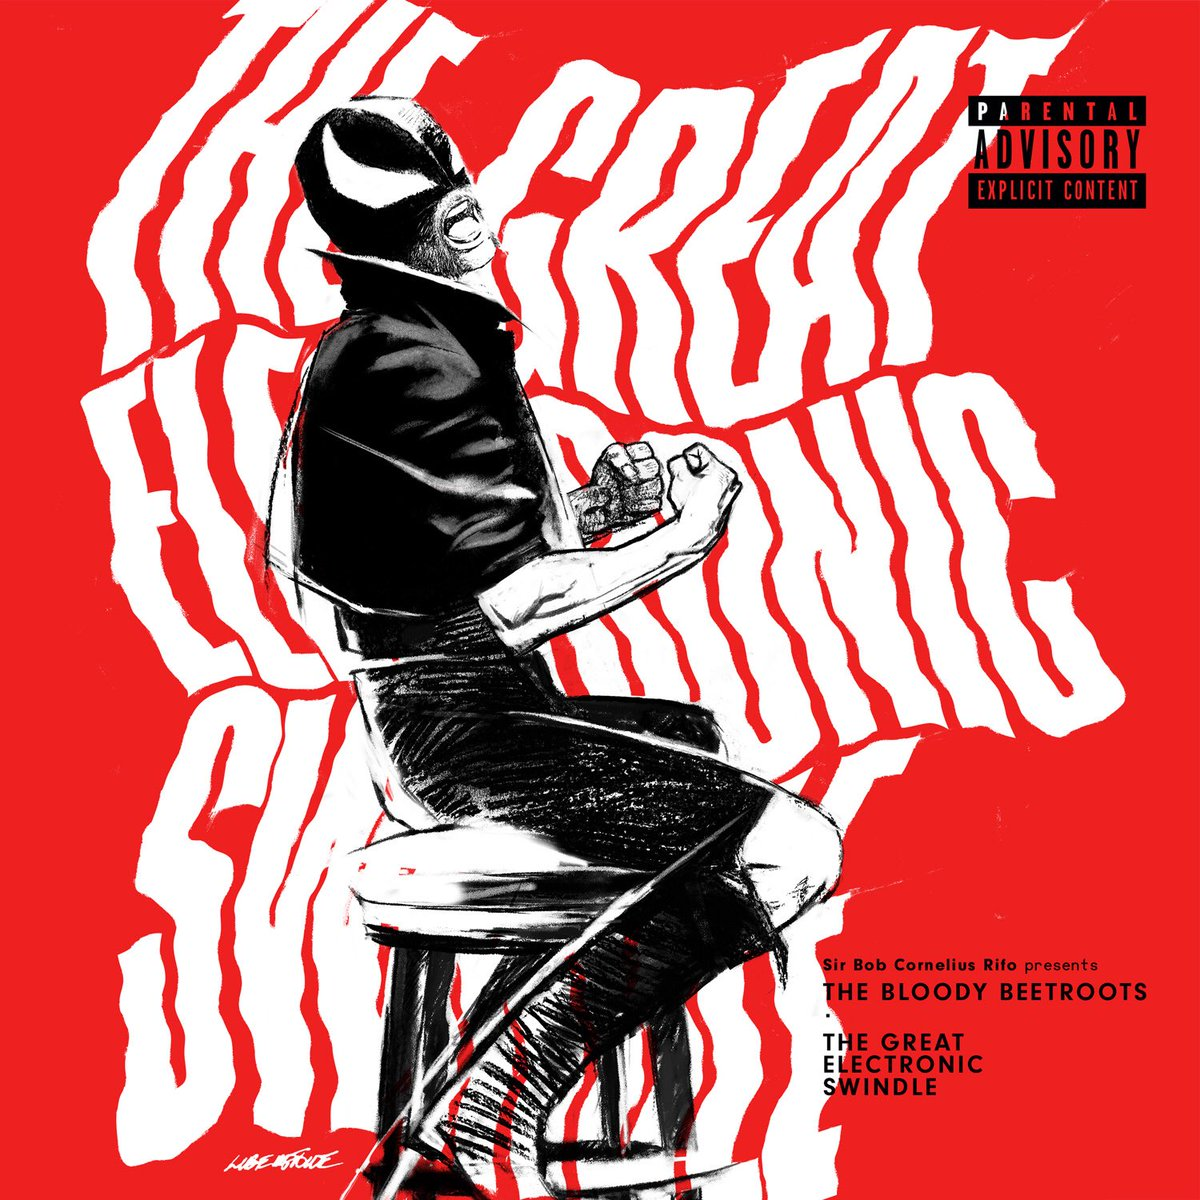 the bloody beetroots bloodybeetroots twitter